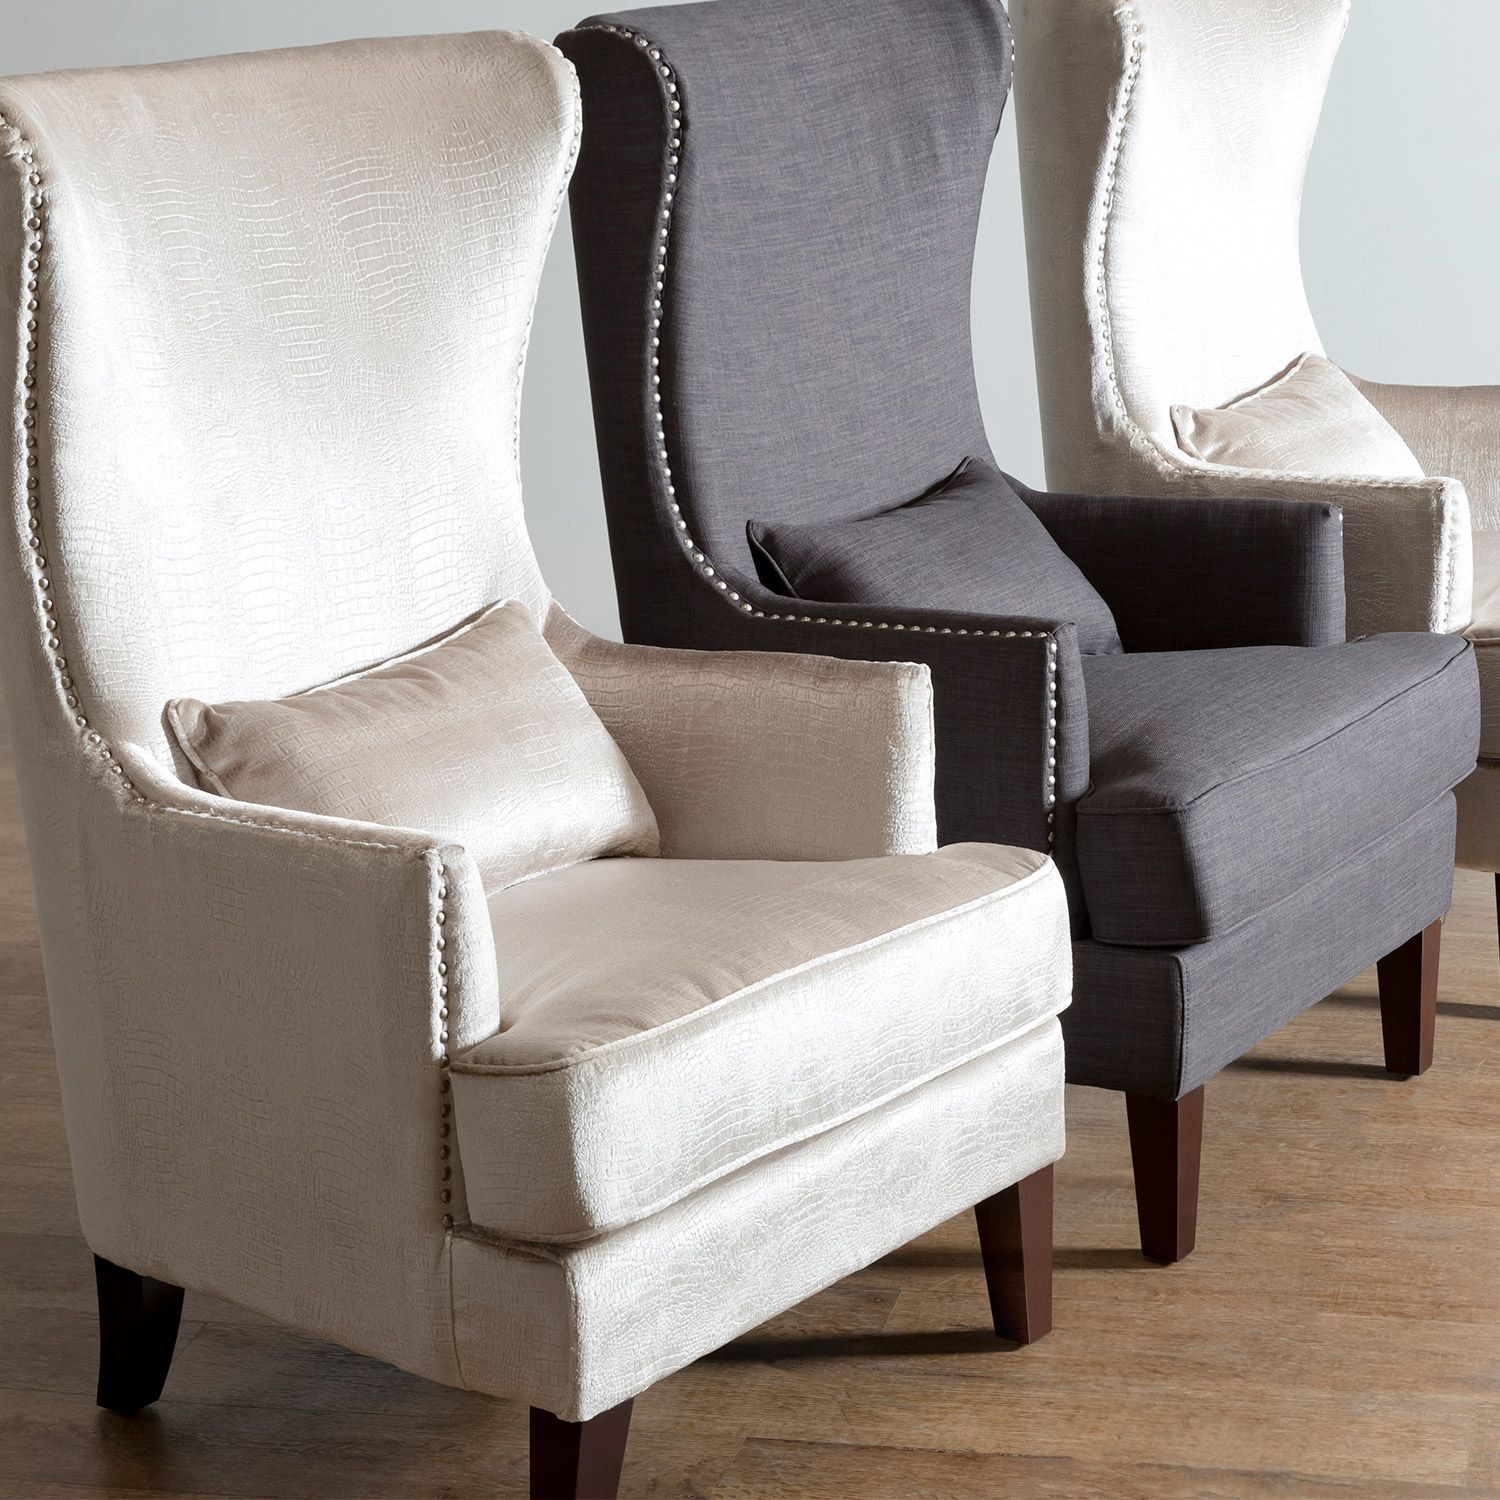 Elizabeth Chairs Wingback Accent Chairs With Nailhead Button